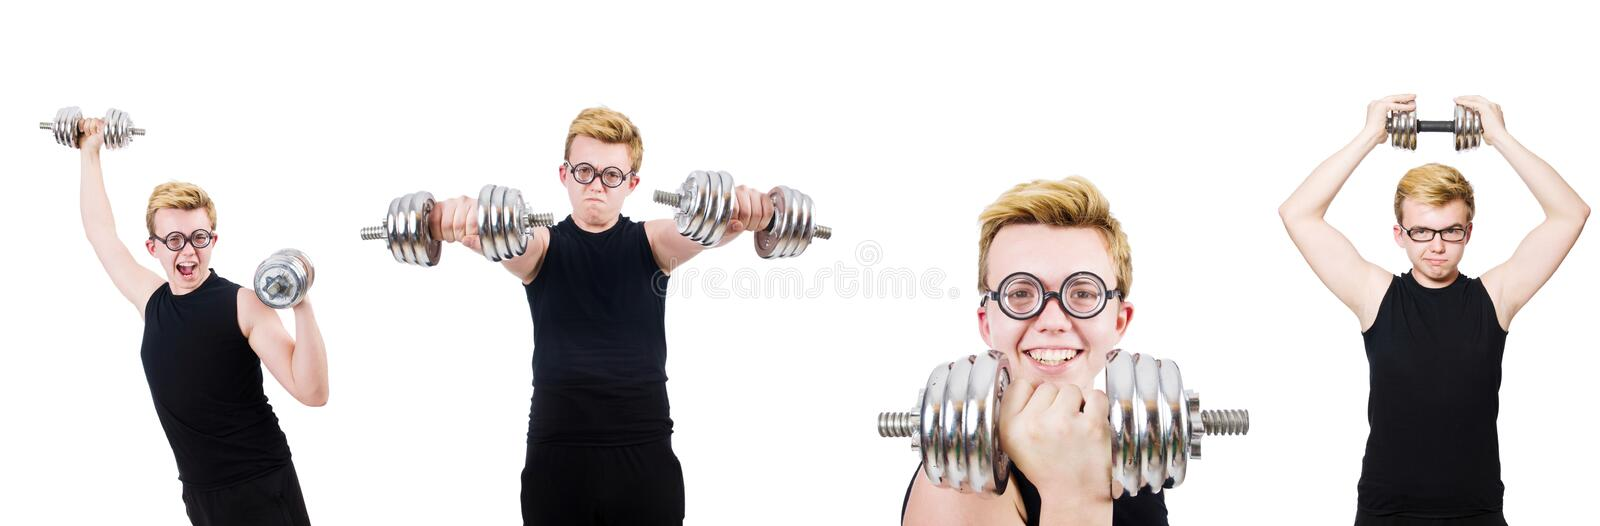 The man with dumbbells isolated on white. Man with dumbbells isolated on white stock photography